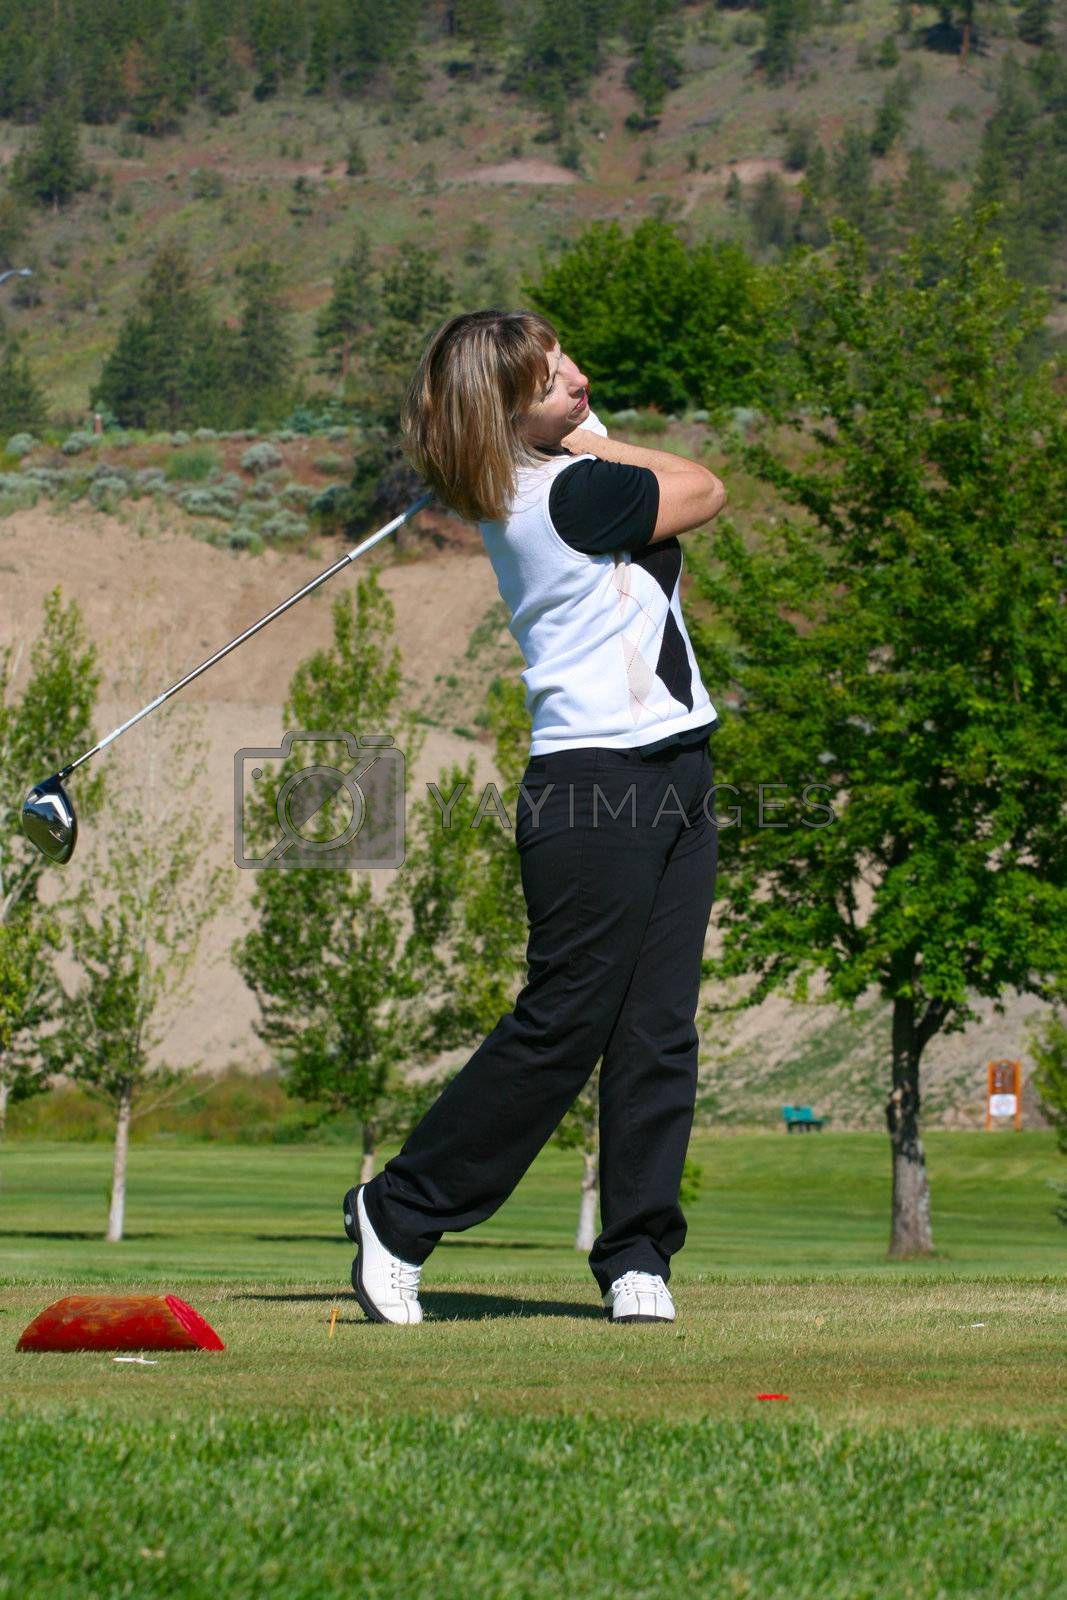 Blond female golfer following her ball from the tee-box